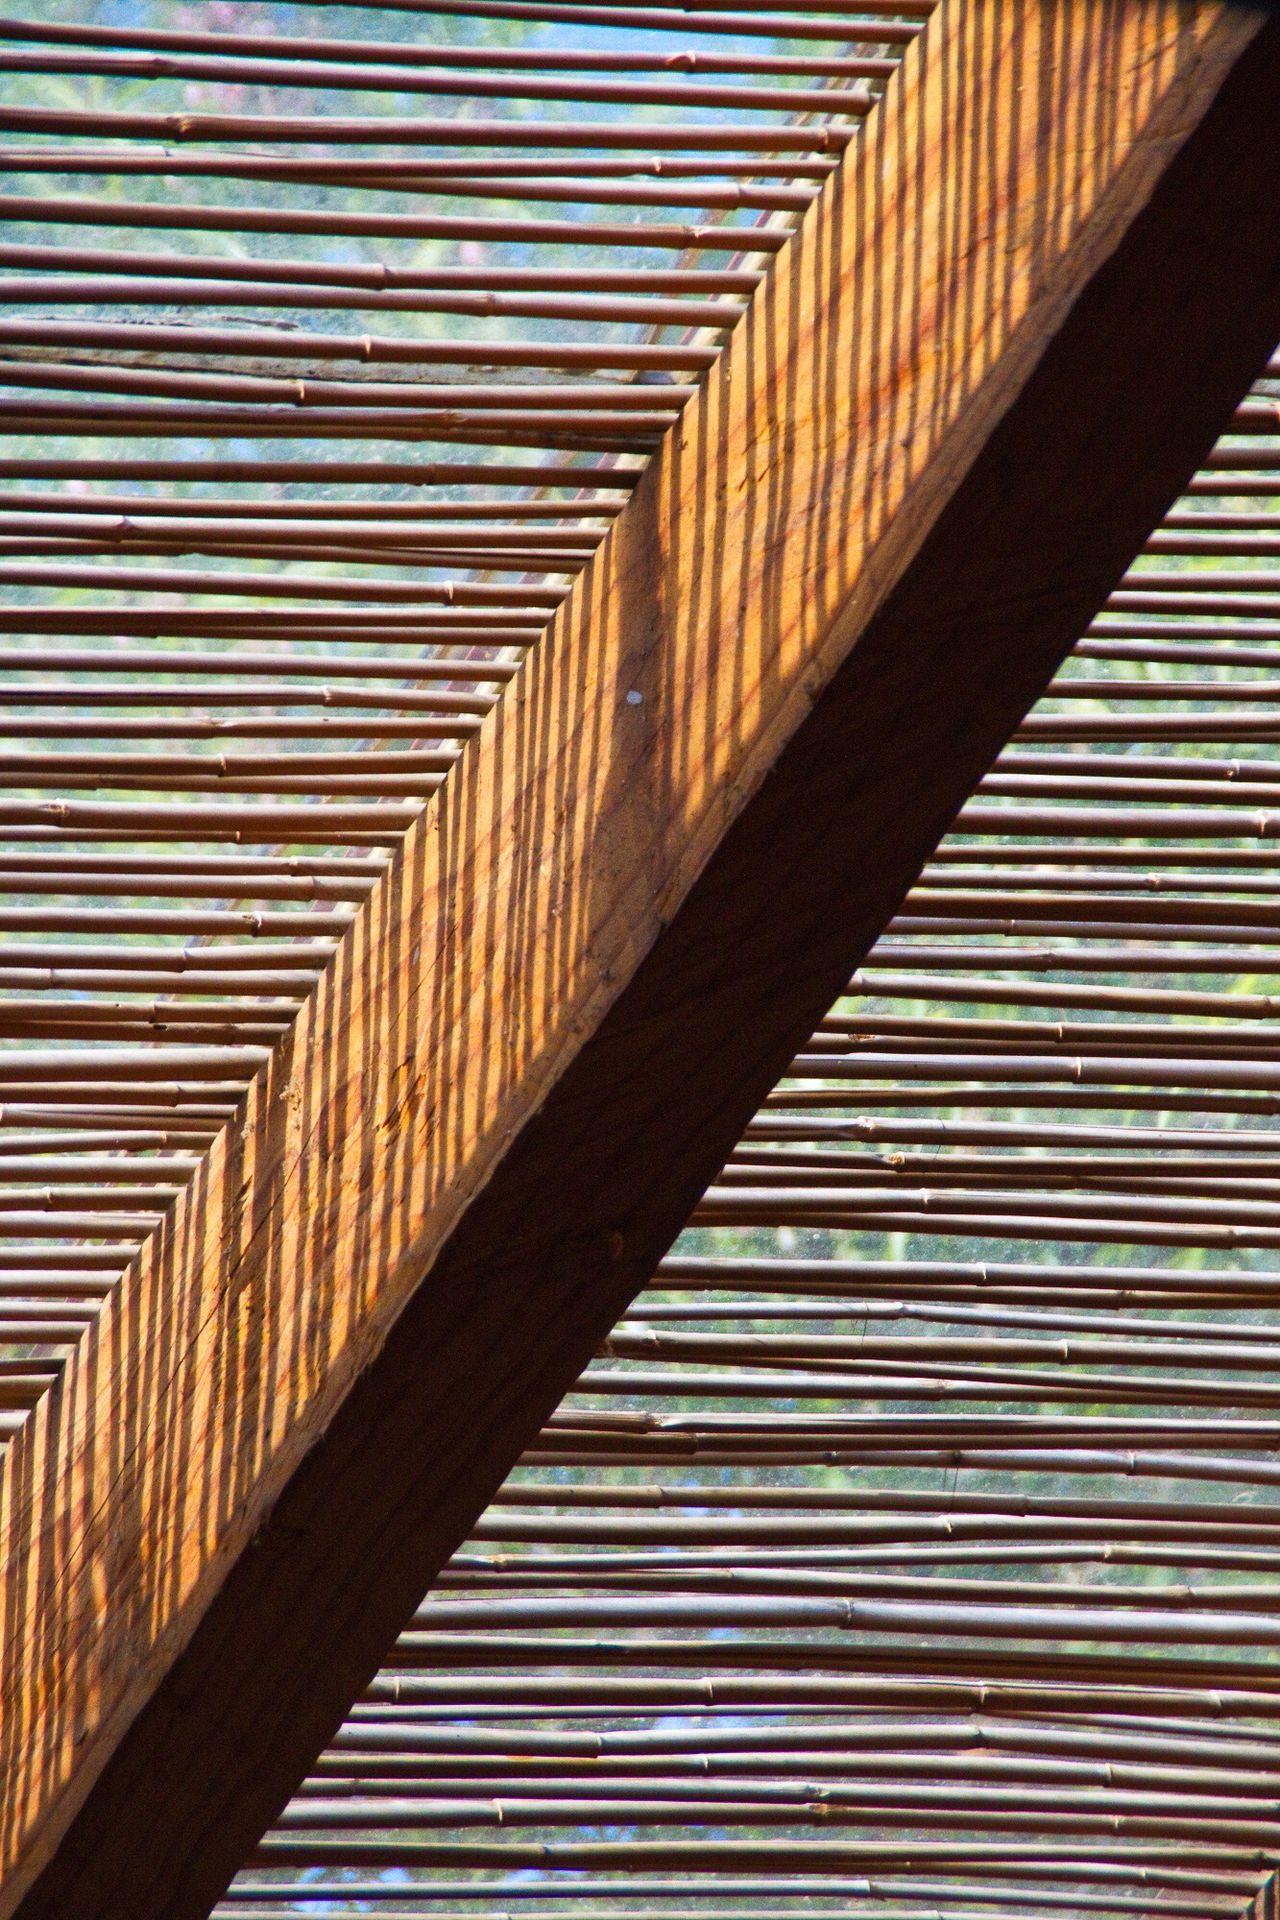 Chiapas Mexico. Urban Textured  Pattern, Texture, Shape And Form Eye4photography  Check This Out Perspective Light And Shadow Texture Abstract Mexico Urban Geometry Arrangement Geometry No People Pattern Order Design Chiapas